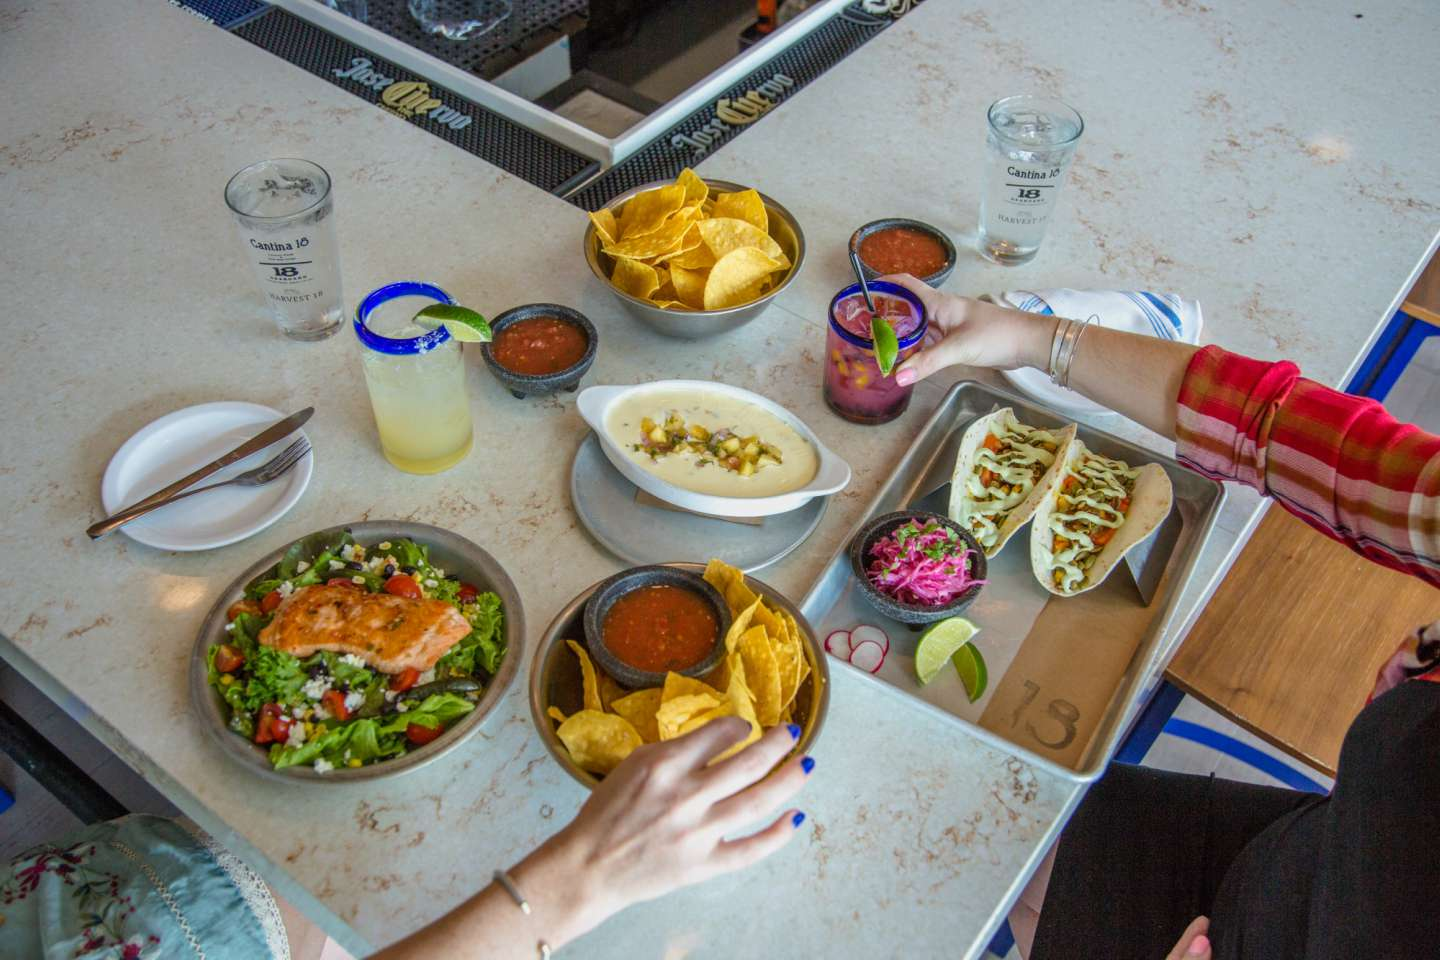 Cantina 18 in Cameron Village for a Girls' Day Out - I'm Fixin' To - @mbg0112